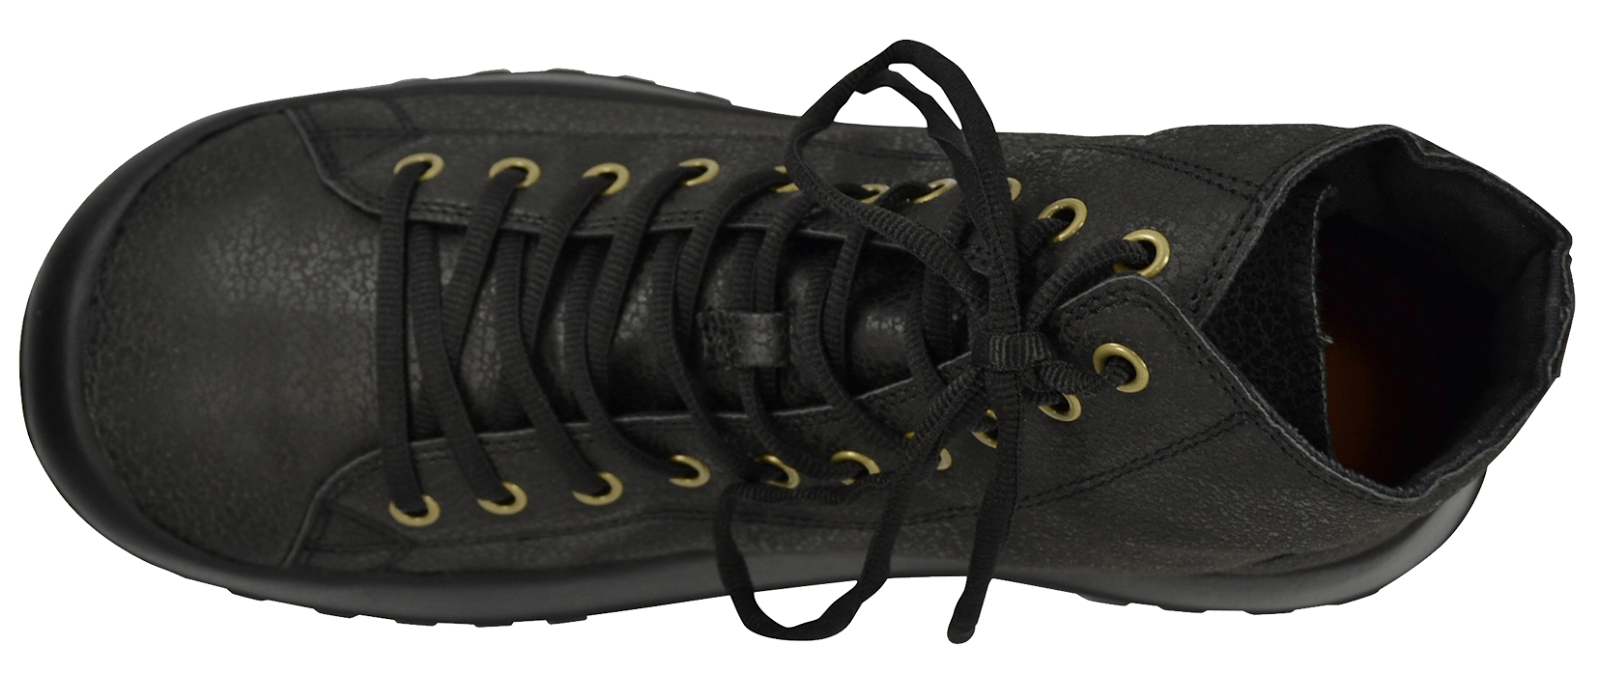 brand new 3bb23 547c0 Shoe of the Day | SoftScience Terrain Ultra Lyte Boots ...